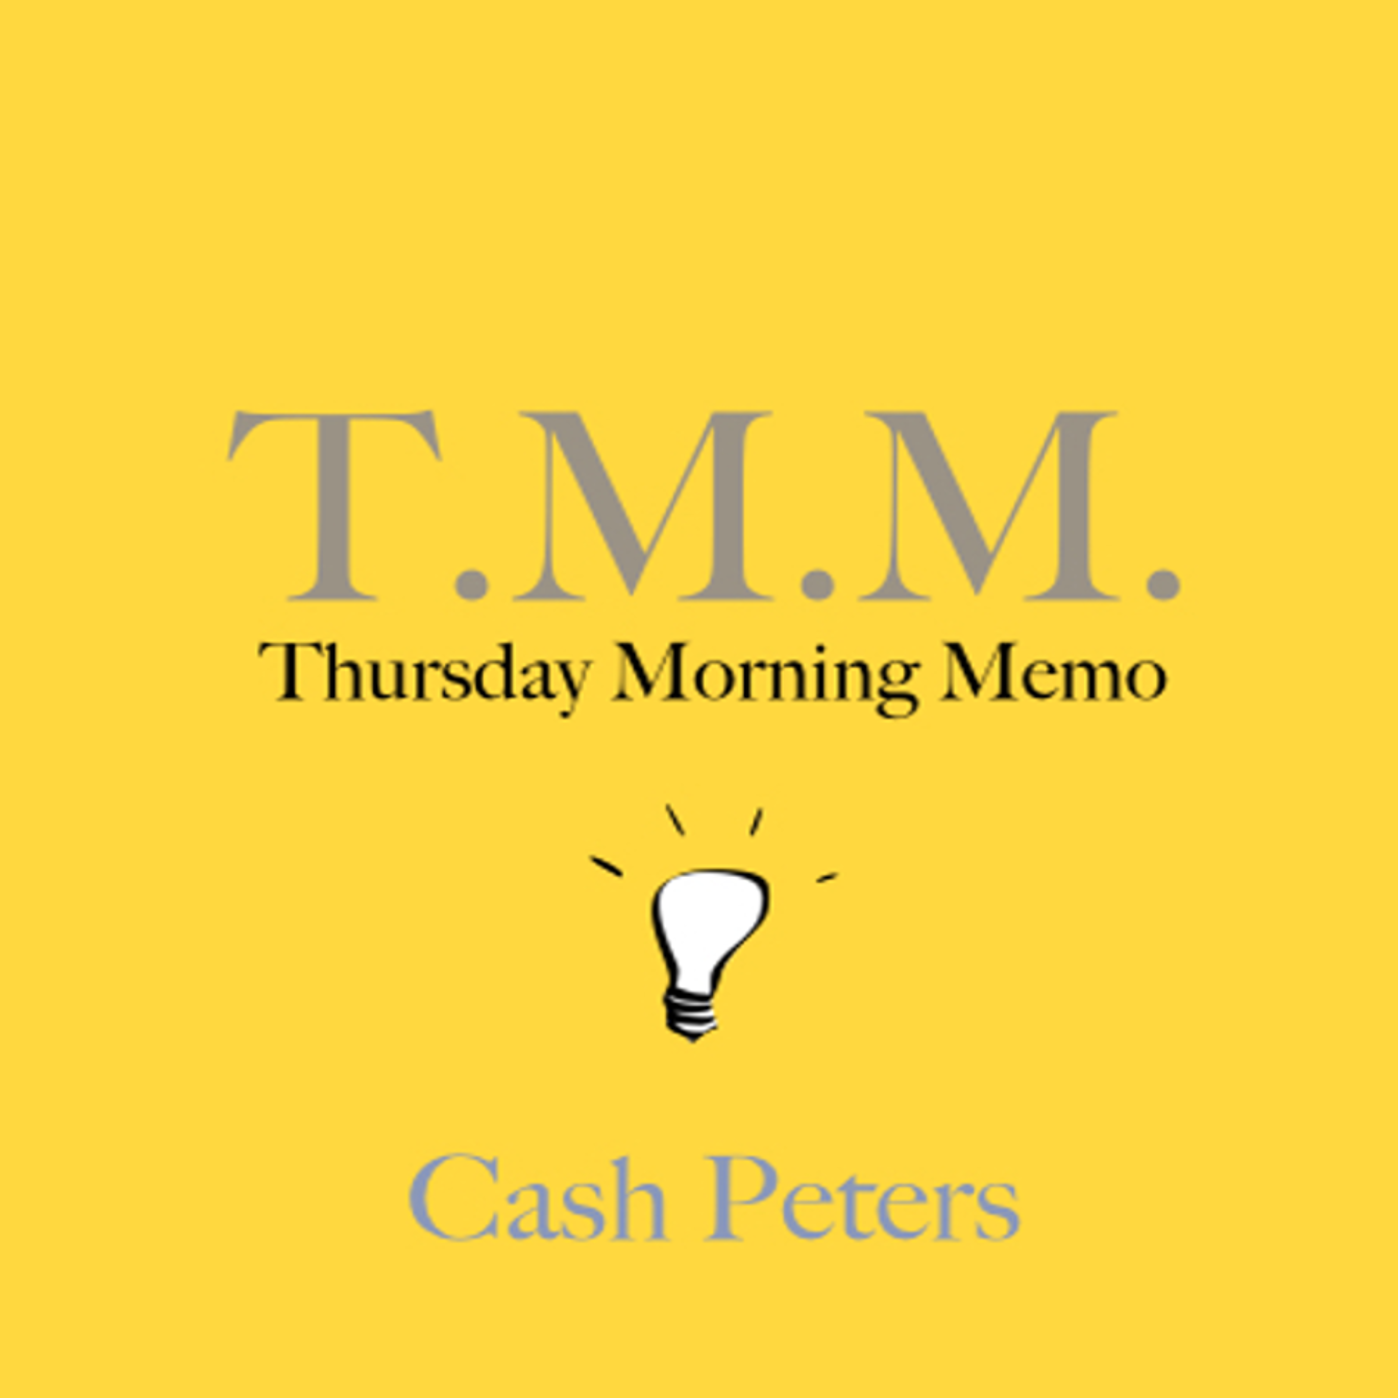 Bonus Memo: What's Stopping You Getting What You Want? Maybe PSTEC's Tim Phizackerley Can Help You Change That.